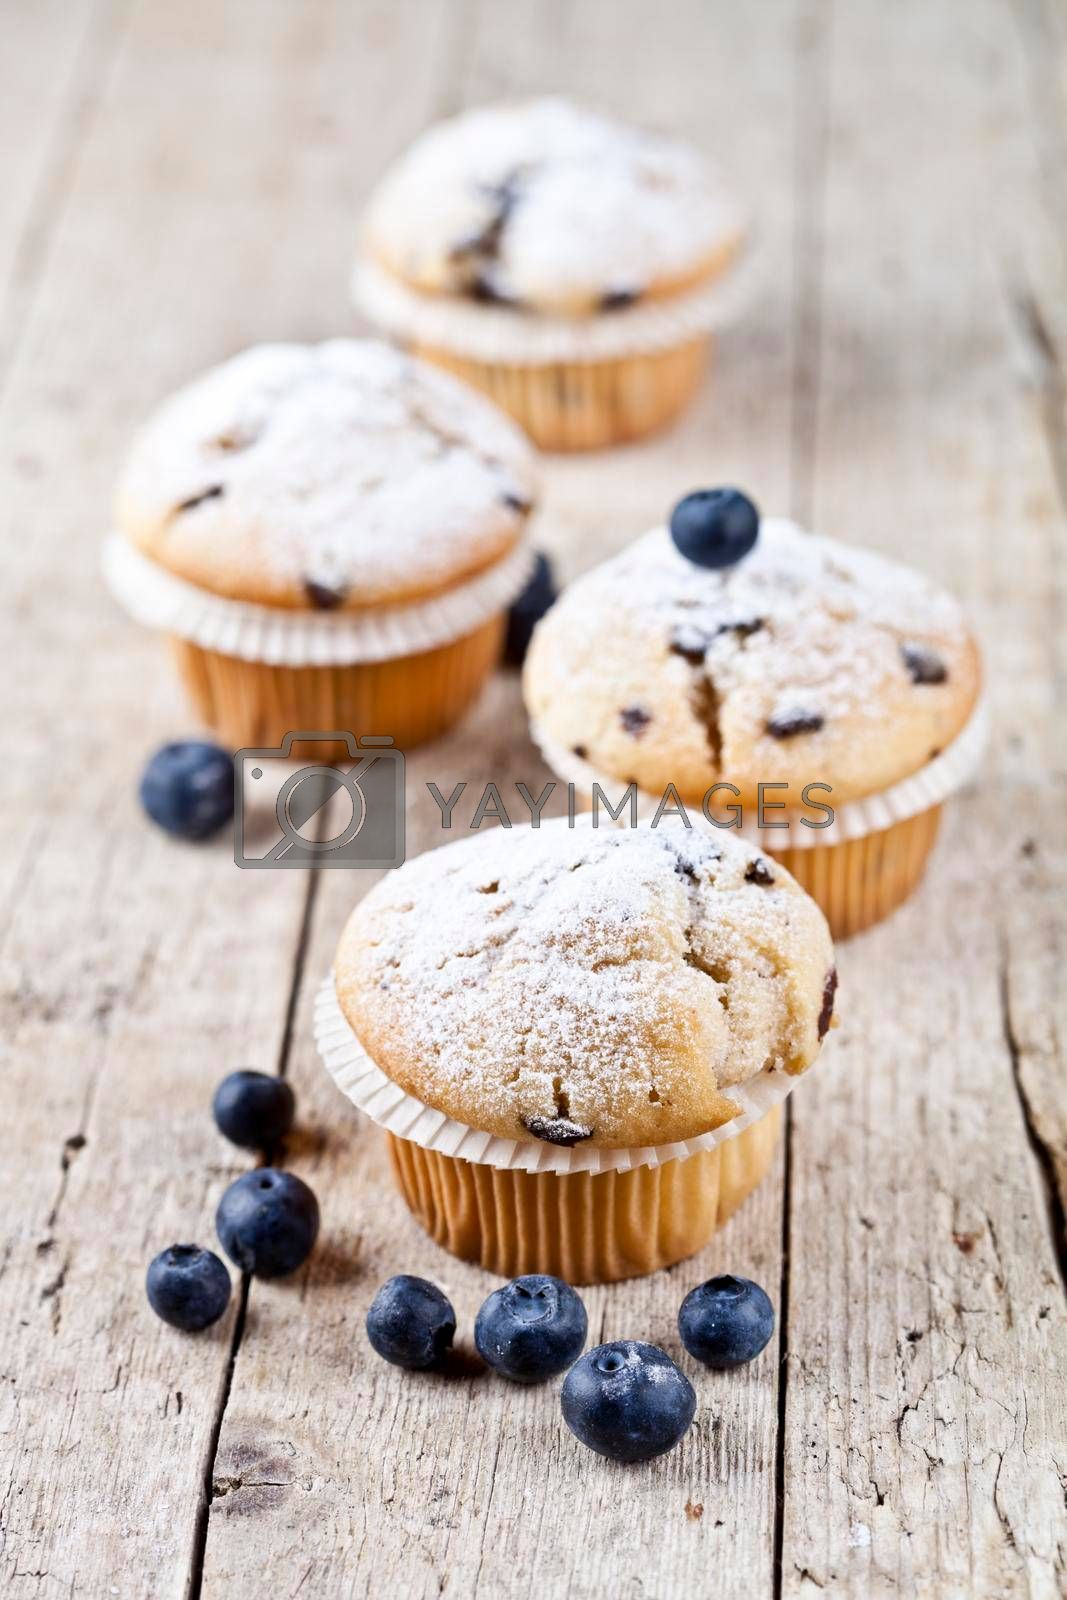 Four fresh homemade muffins with blueberries on rustic wooden table background.